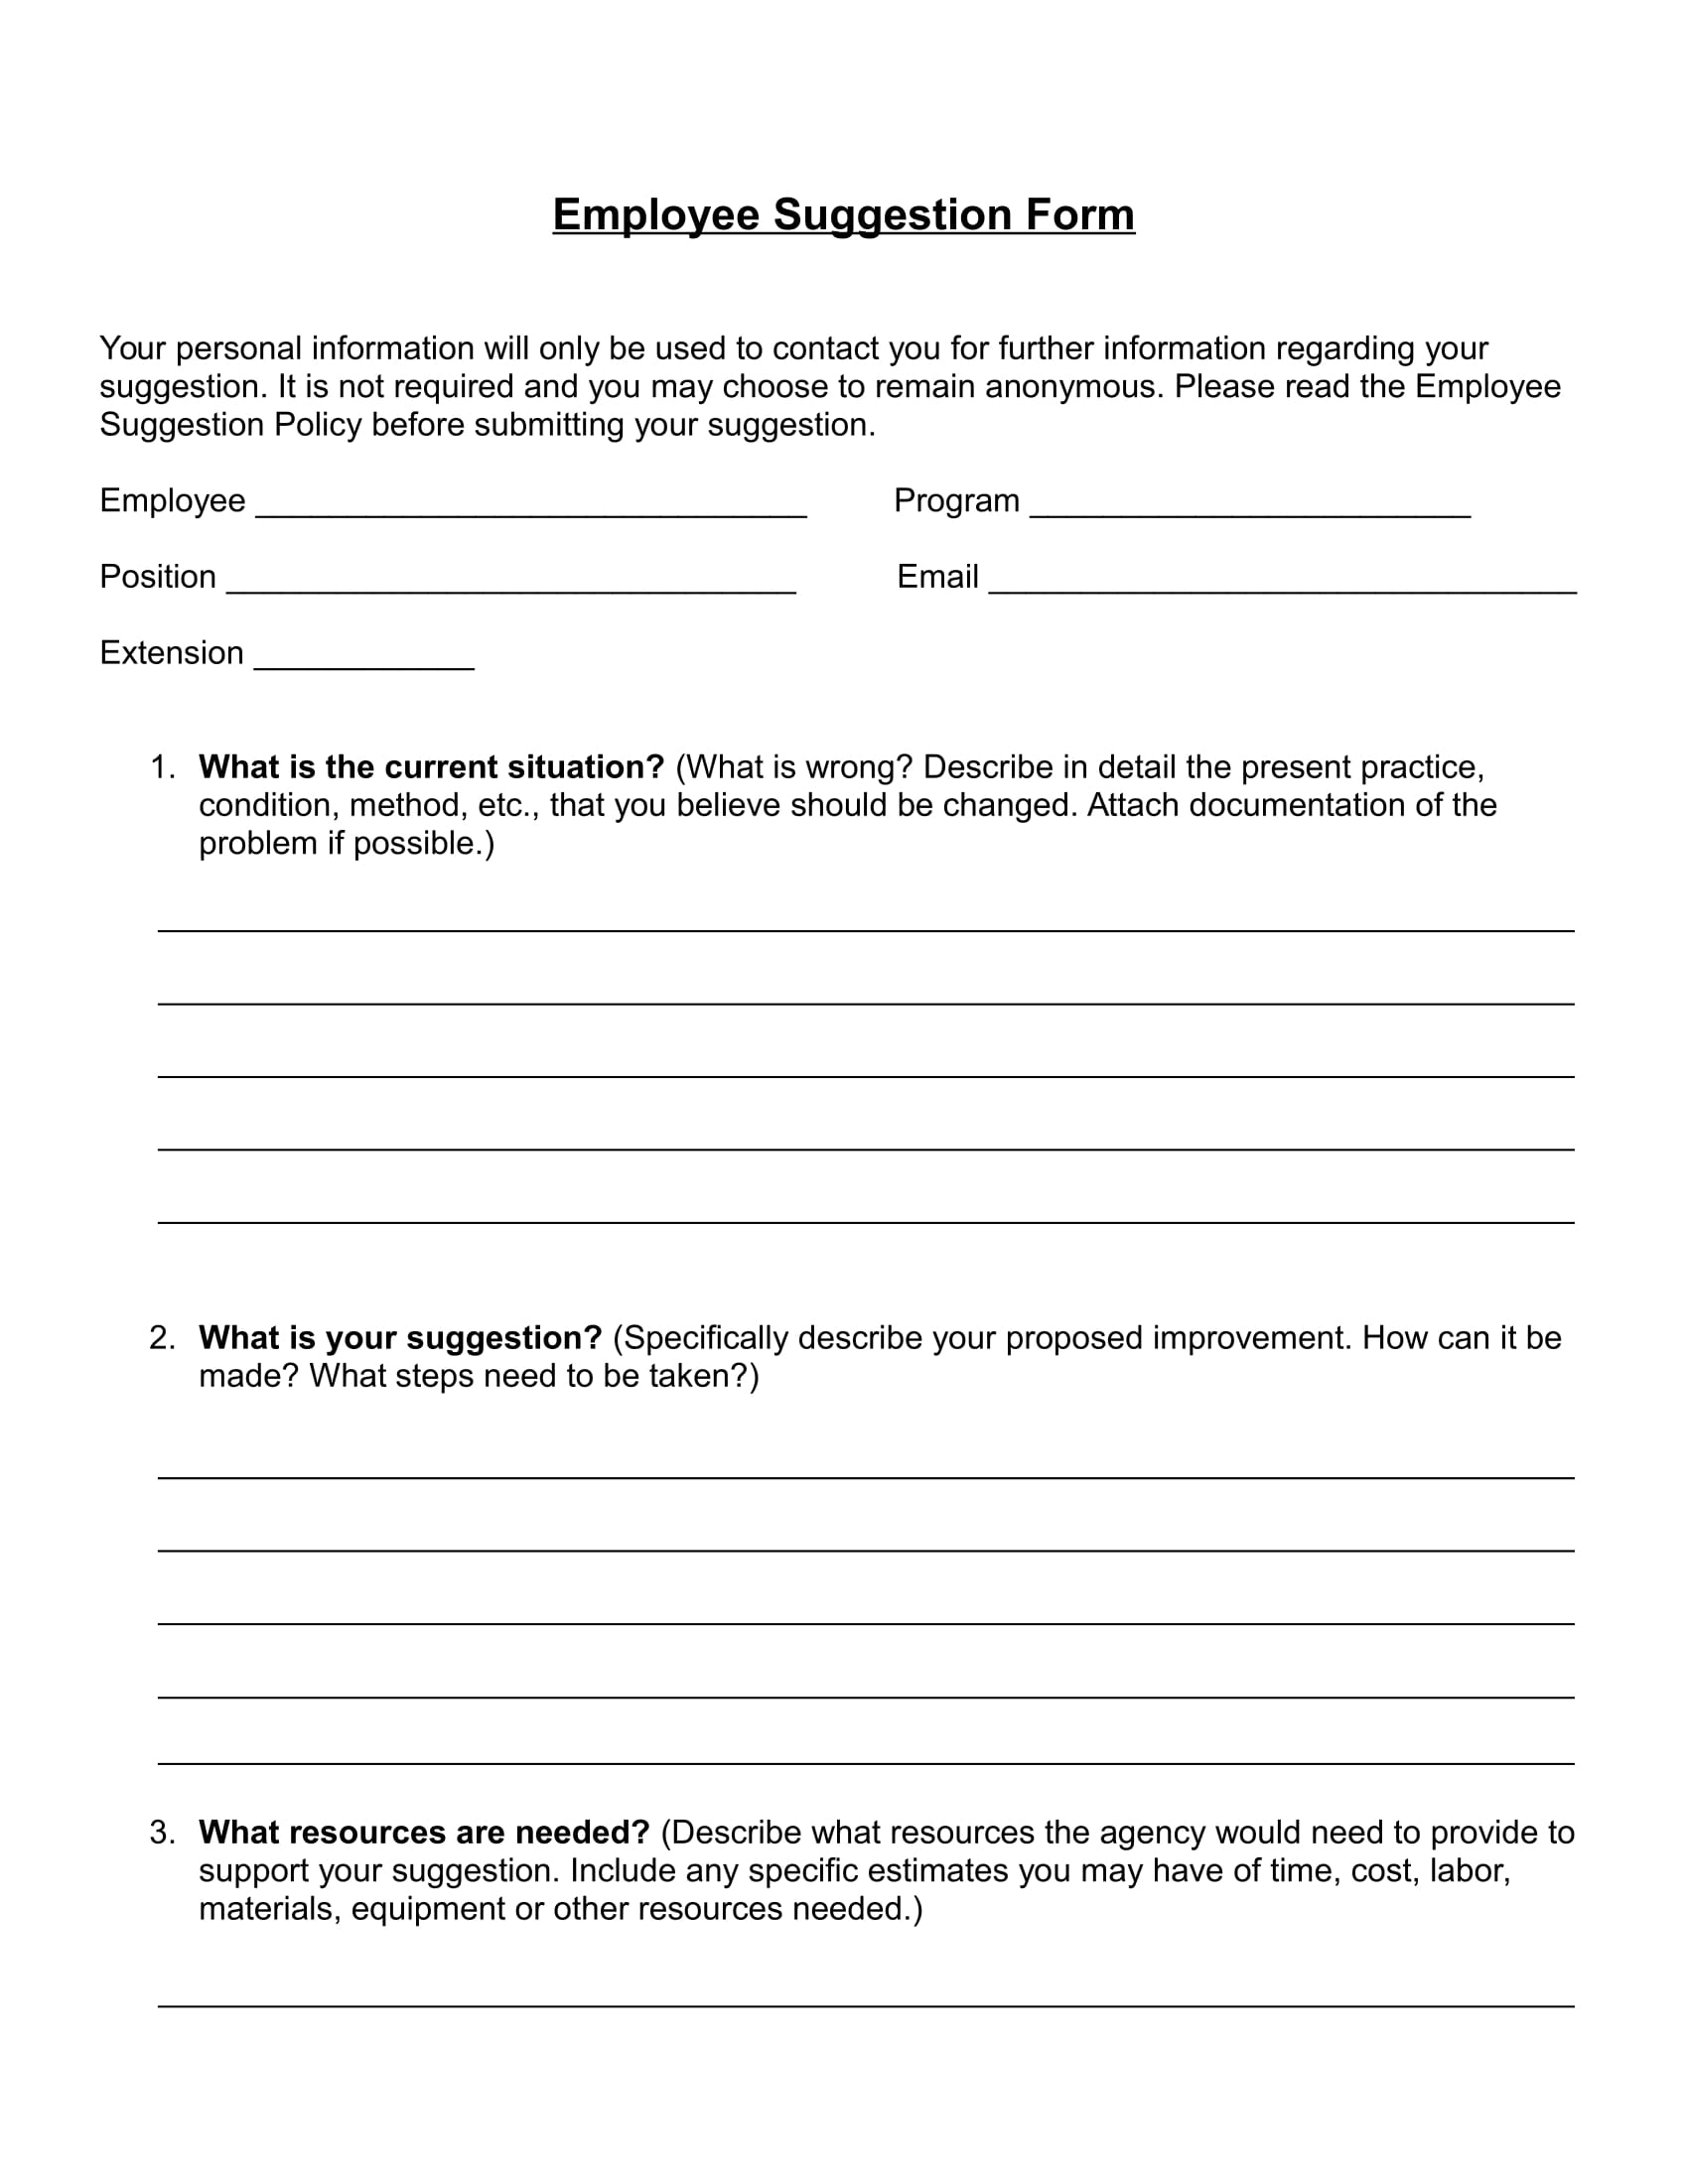 employee suggestion form in doc 1